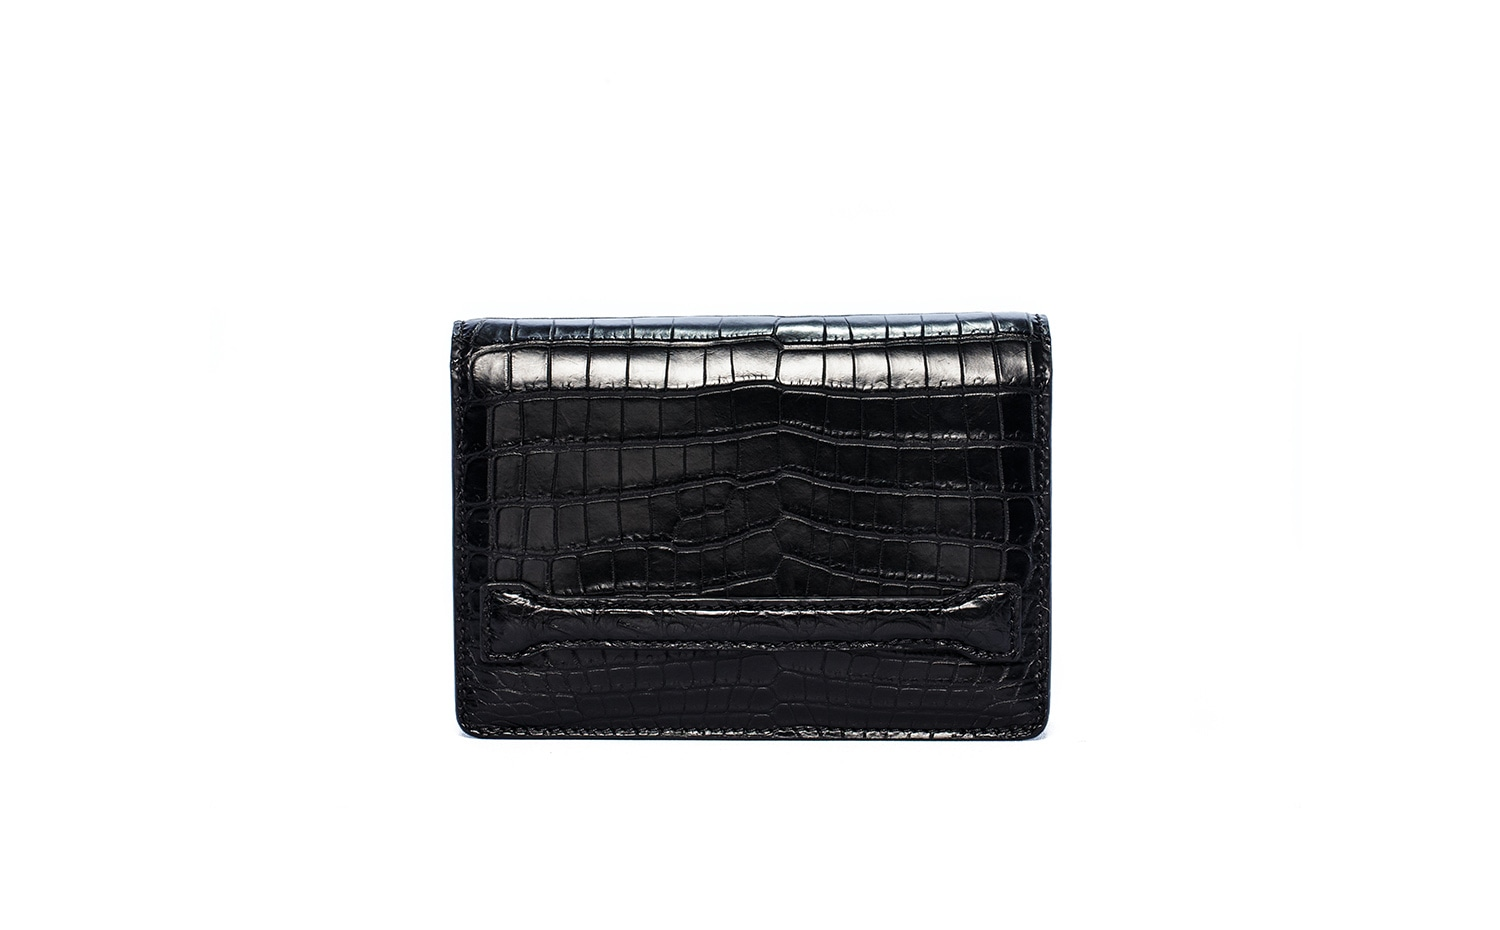 Moreschi : Black Crocodylus Niloticus Clutch Bag